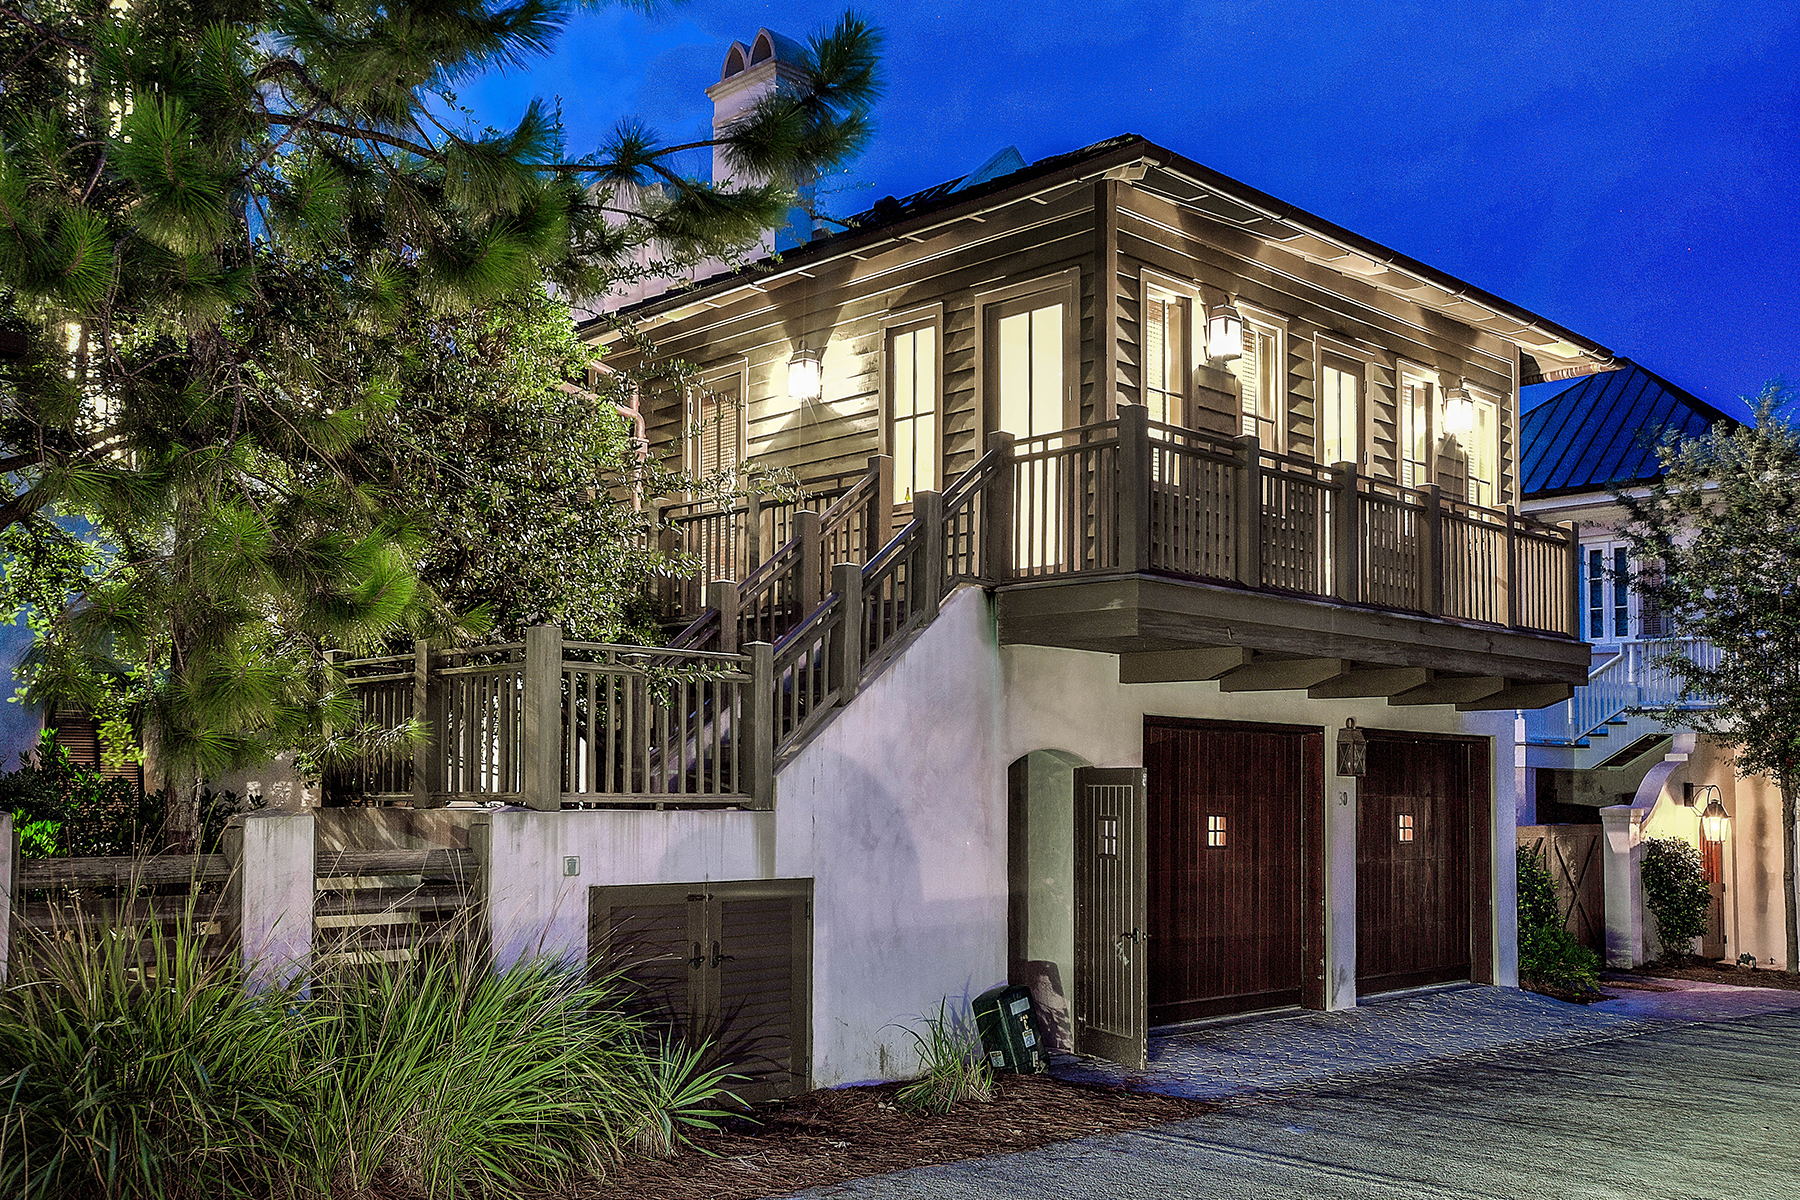 一戸建て のために 売買 アット LUXURIOUS GULF VIEW ROSEMARY HOME EFFORTLESSLY HOSTS GUESTS 30 Spanish Town Lane Rosemary Beach, Rosemary Beach, フロリダ, 32461 アメリカ合衆国